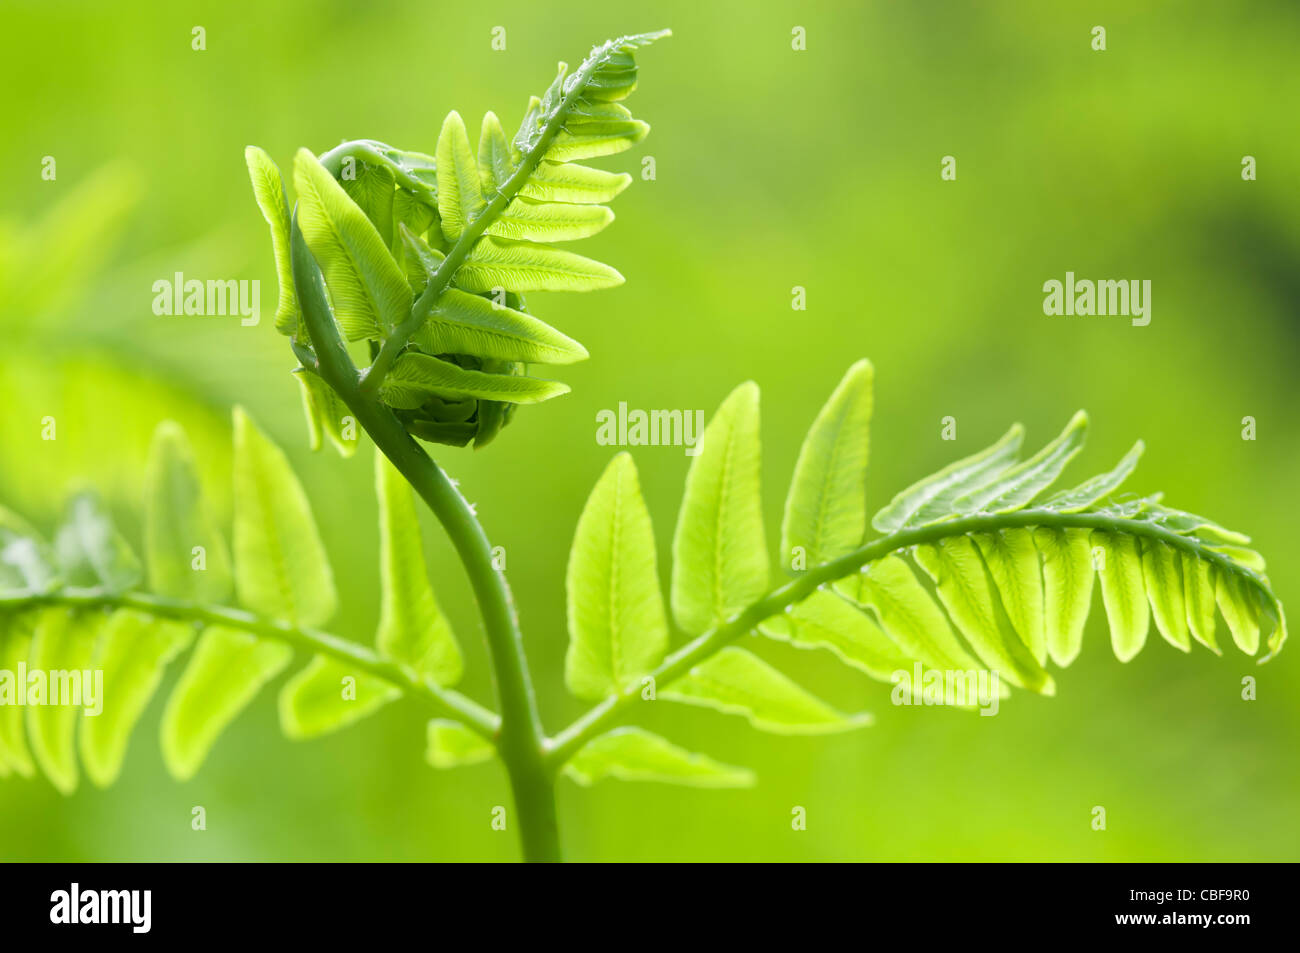 Osmunda regalis, Fern leaf unfurling, Green subject, Green background. - Stock Image